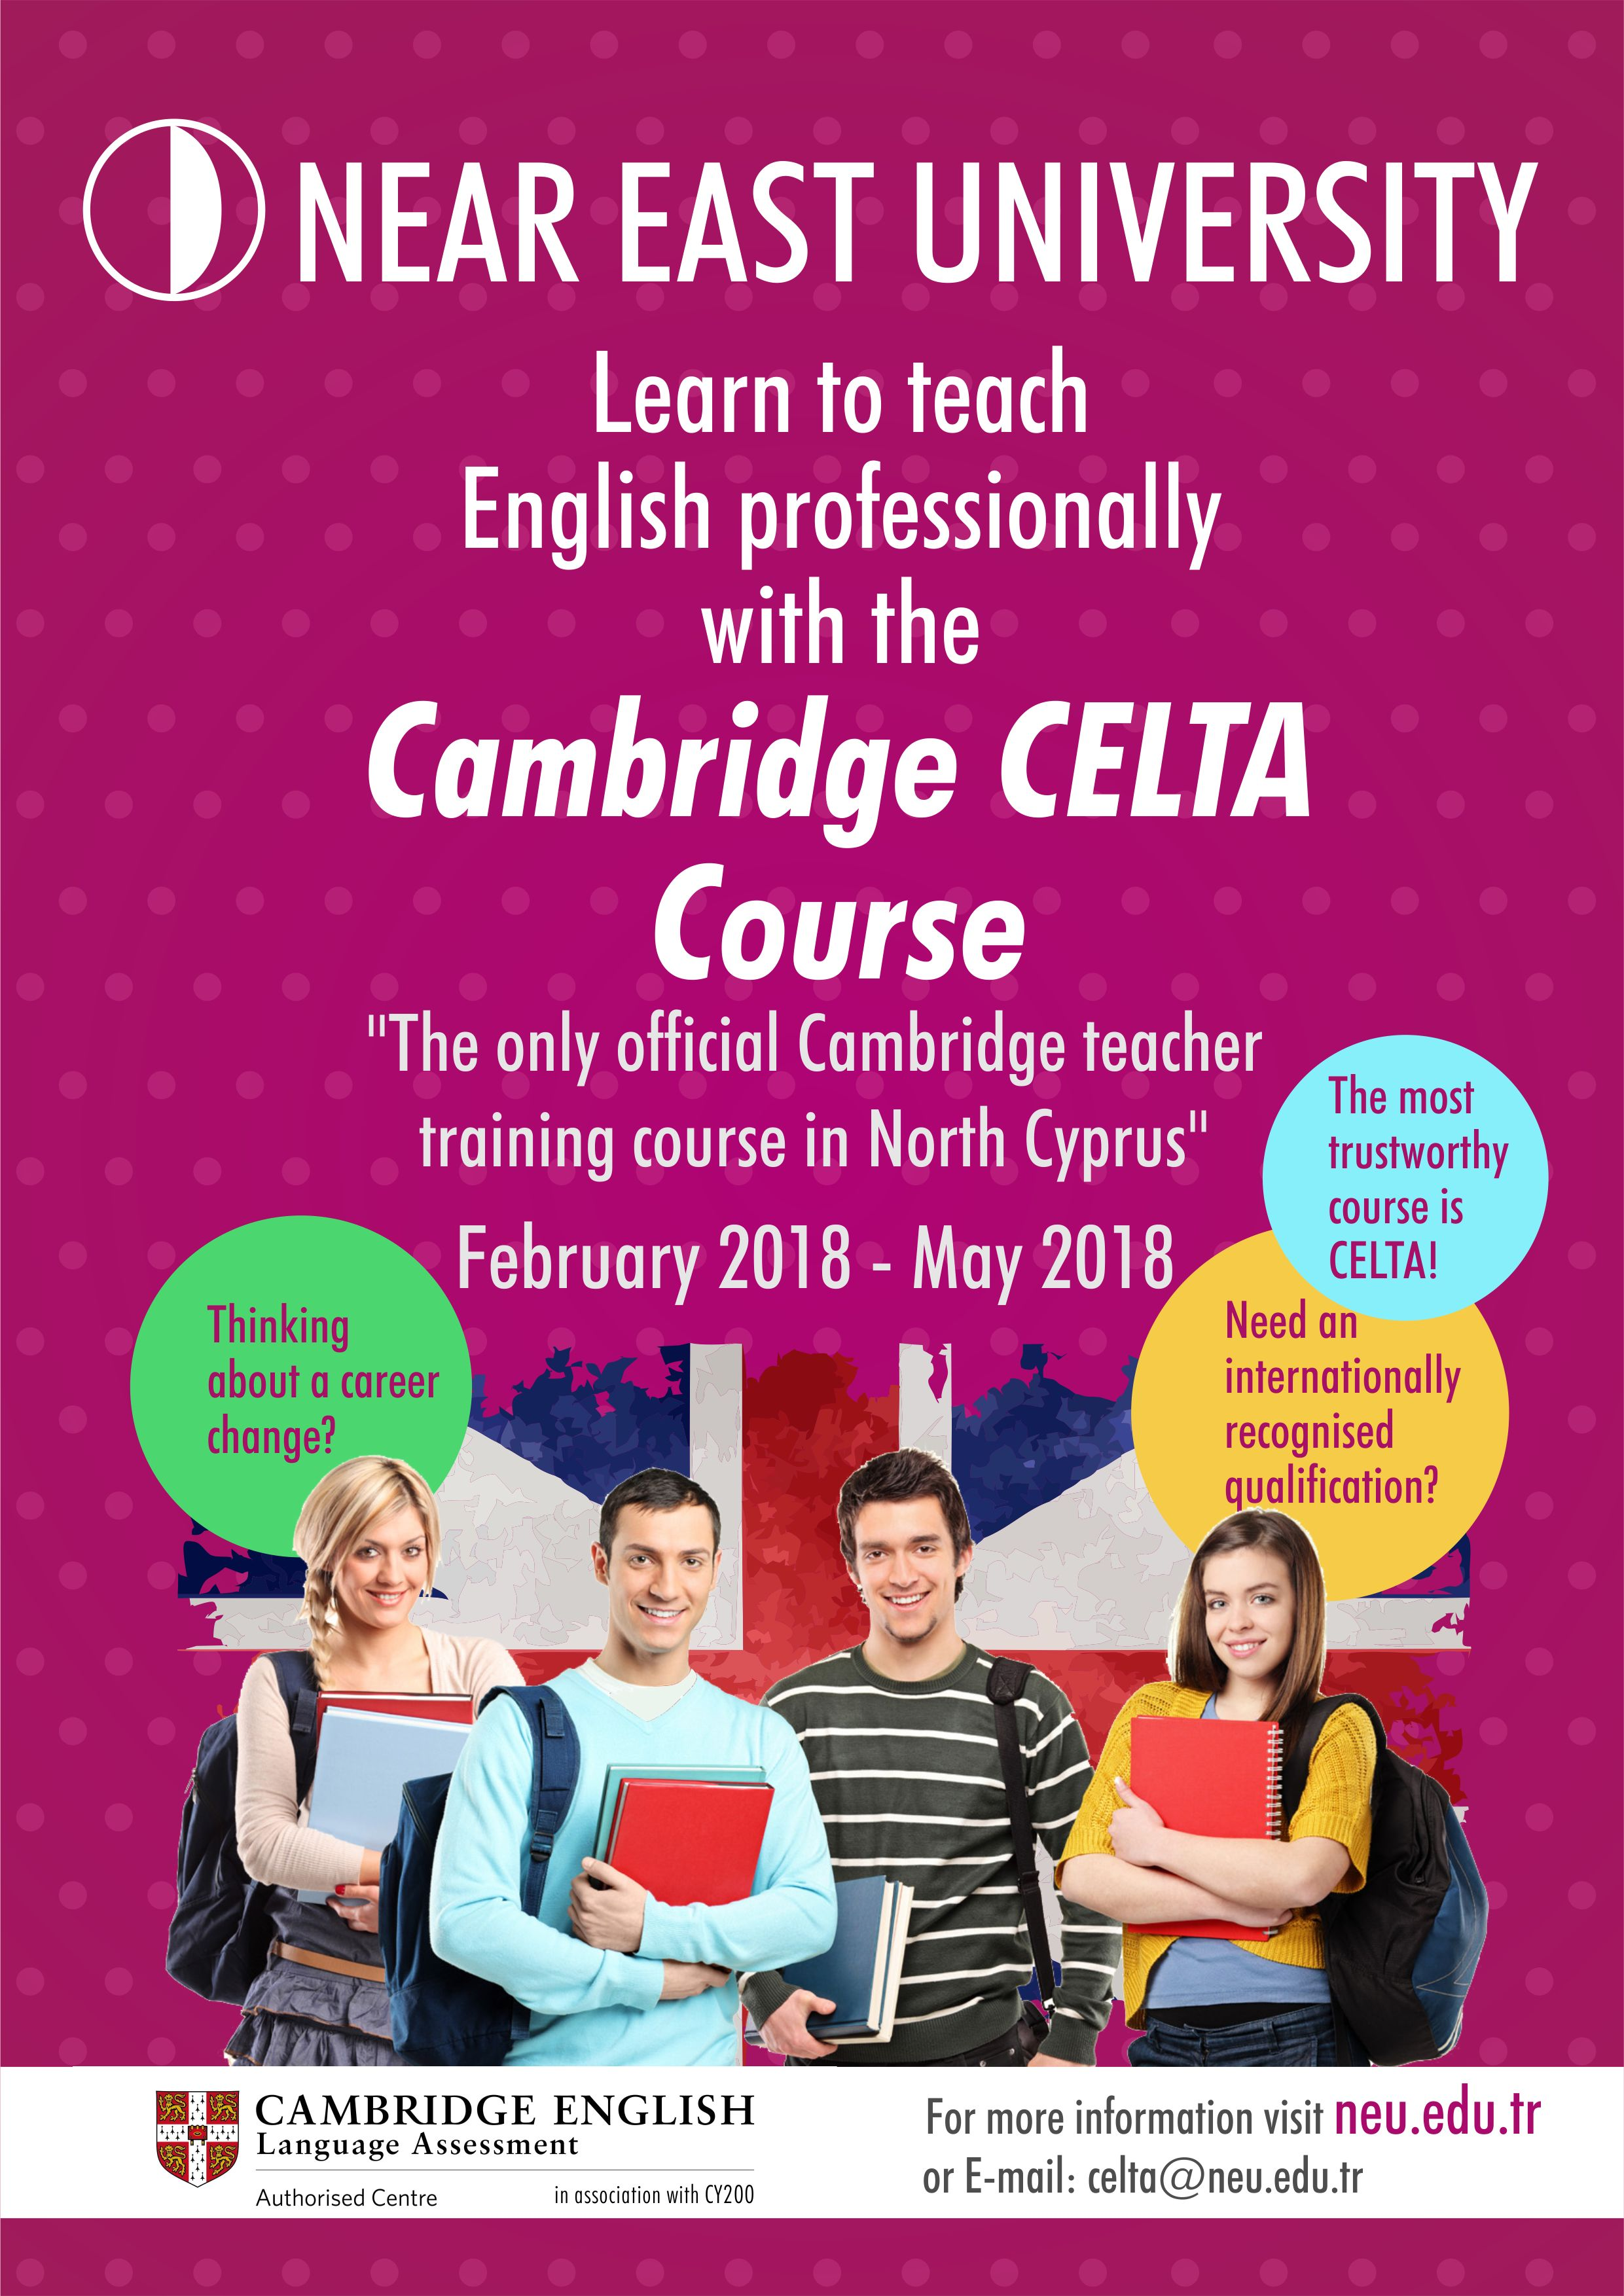 Certificate in Teaching English to Adults (CELTA) program is being given at Near East University